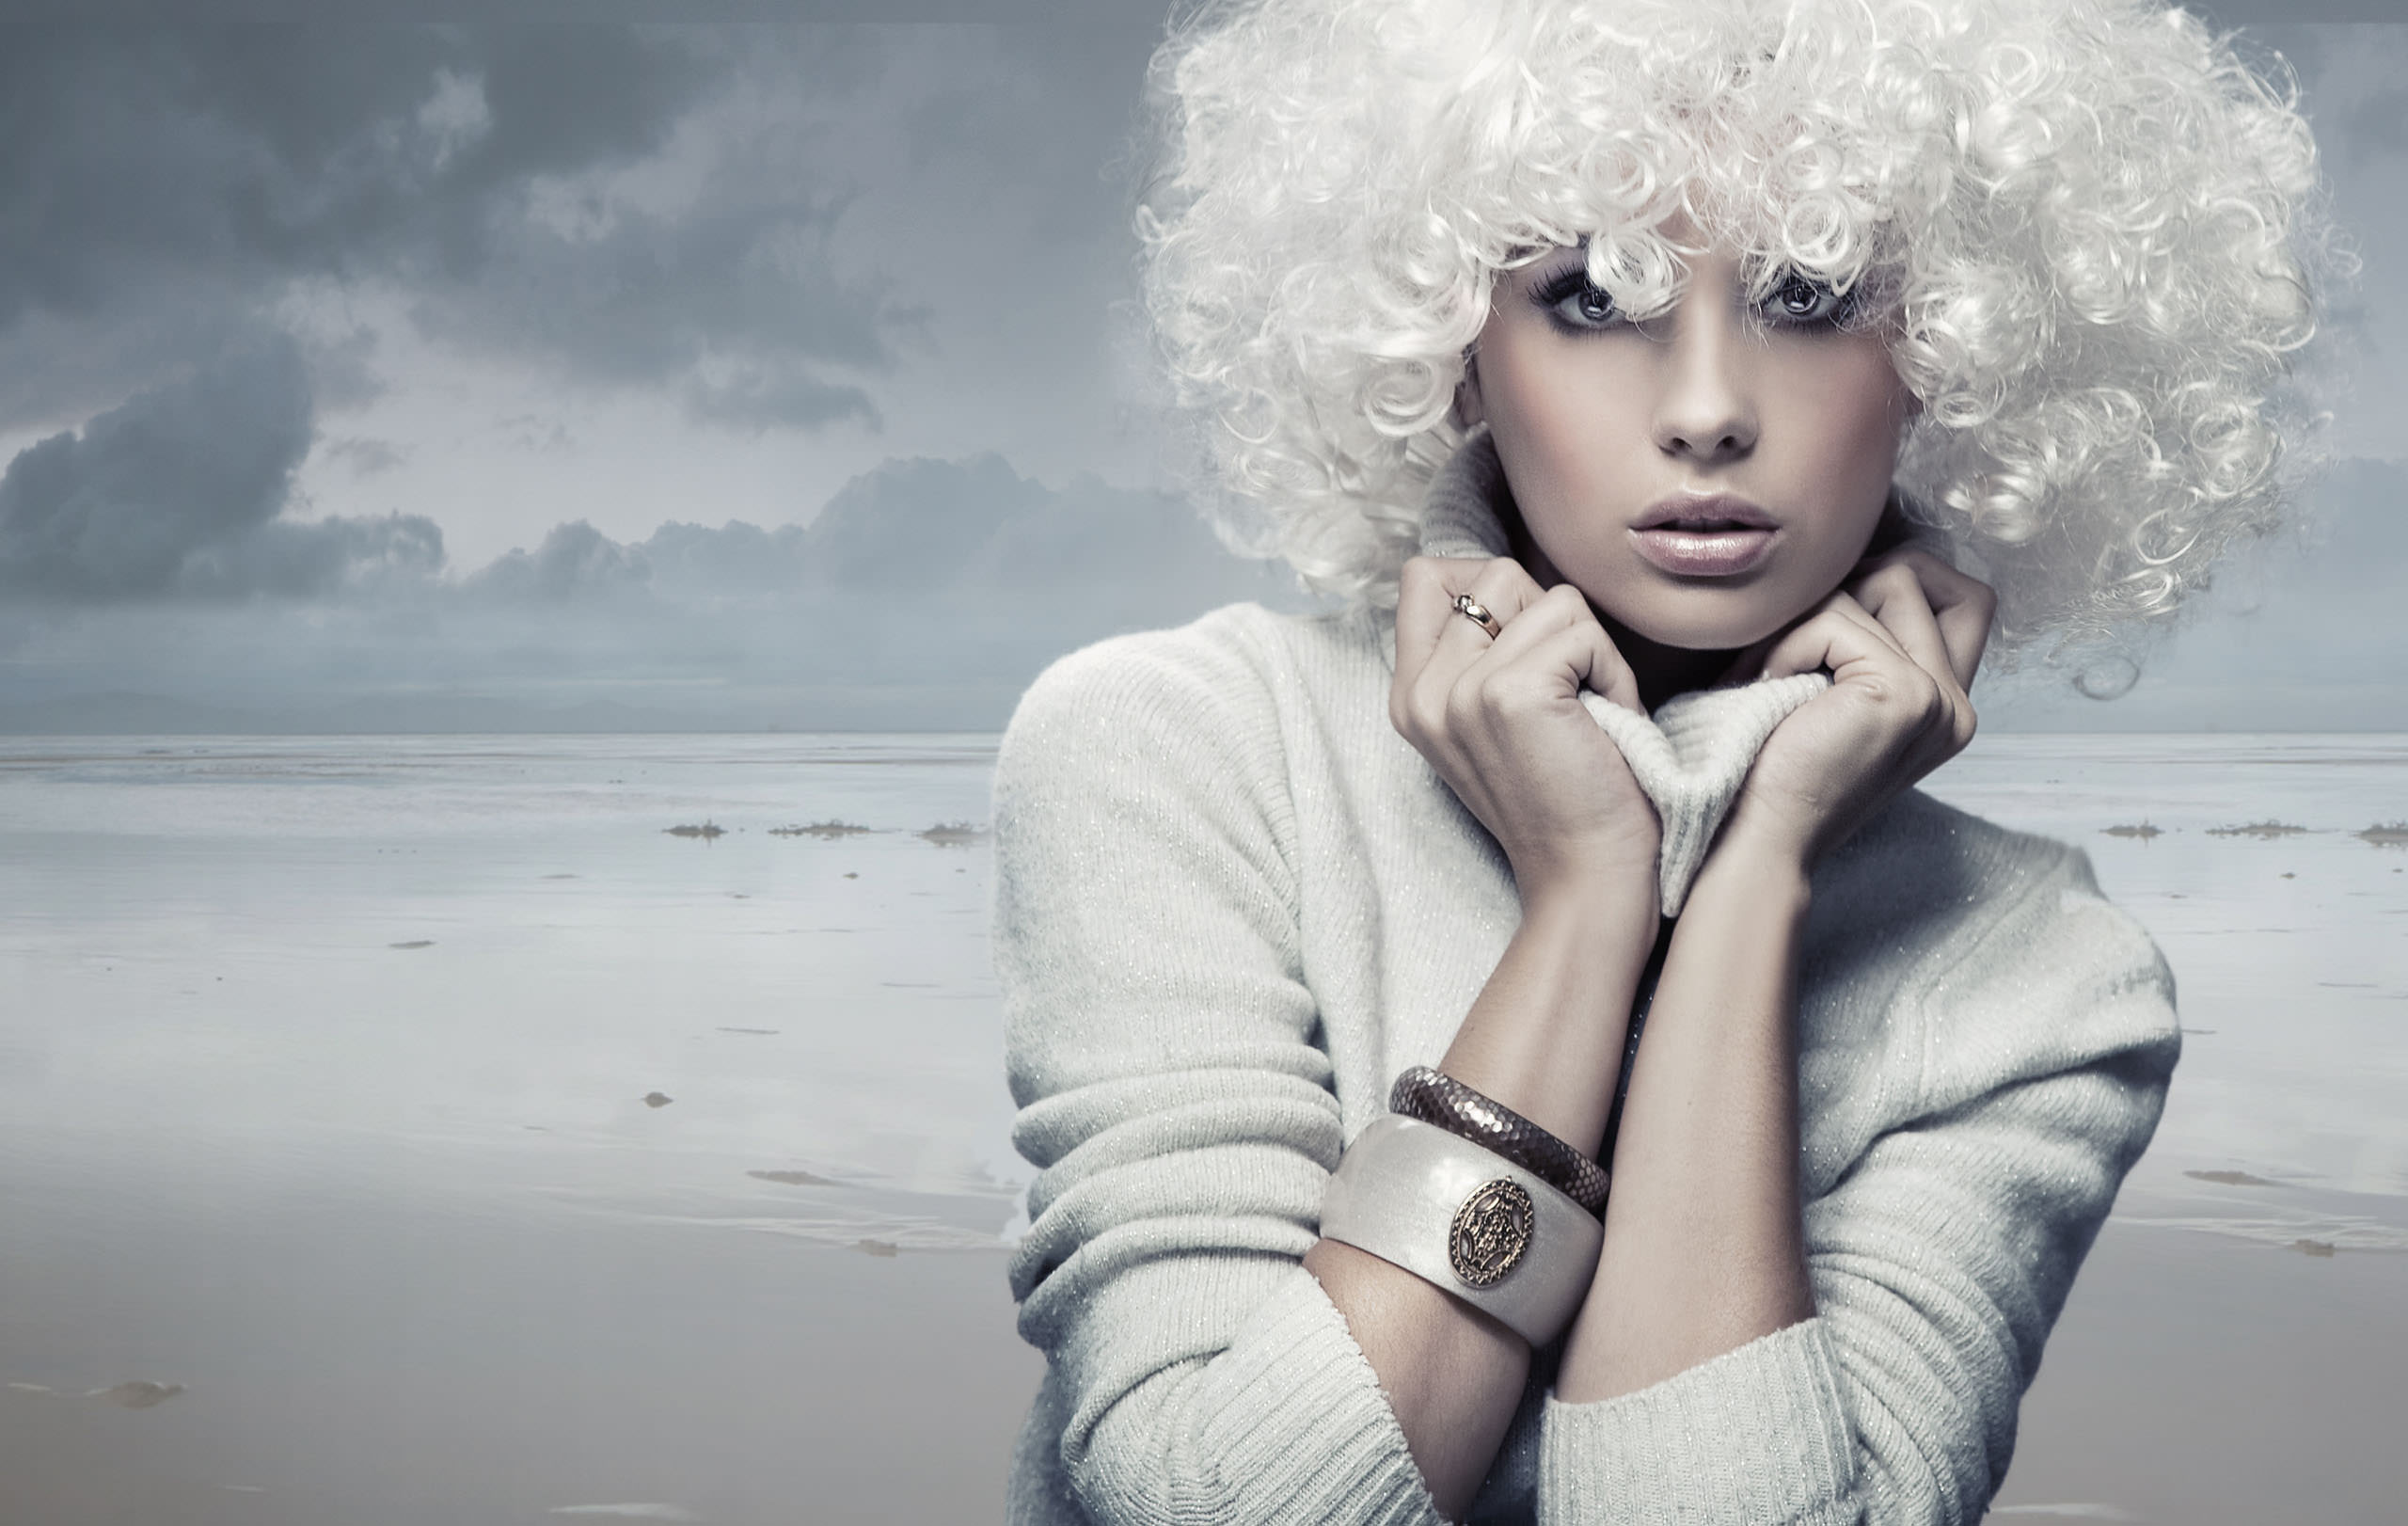 fashion photography borse ed accessori 07 | Studio Ponzelli